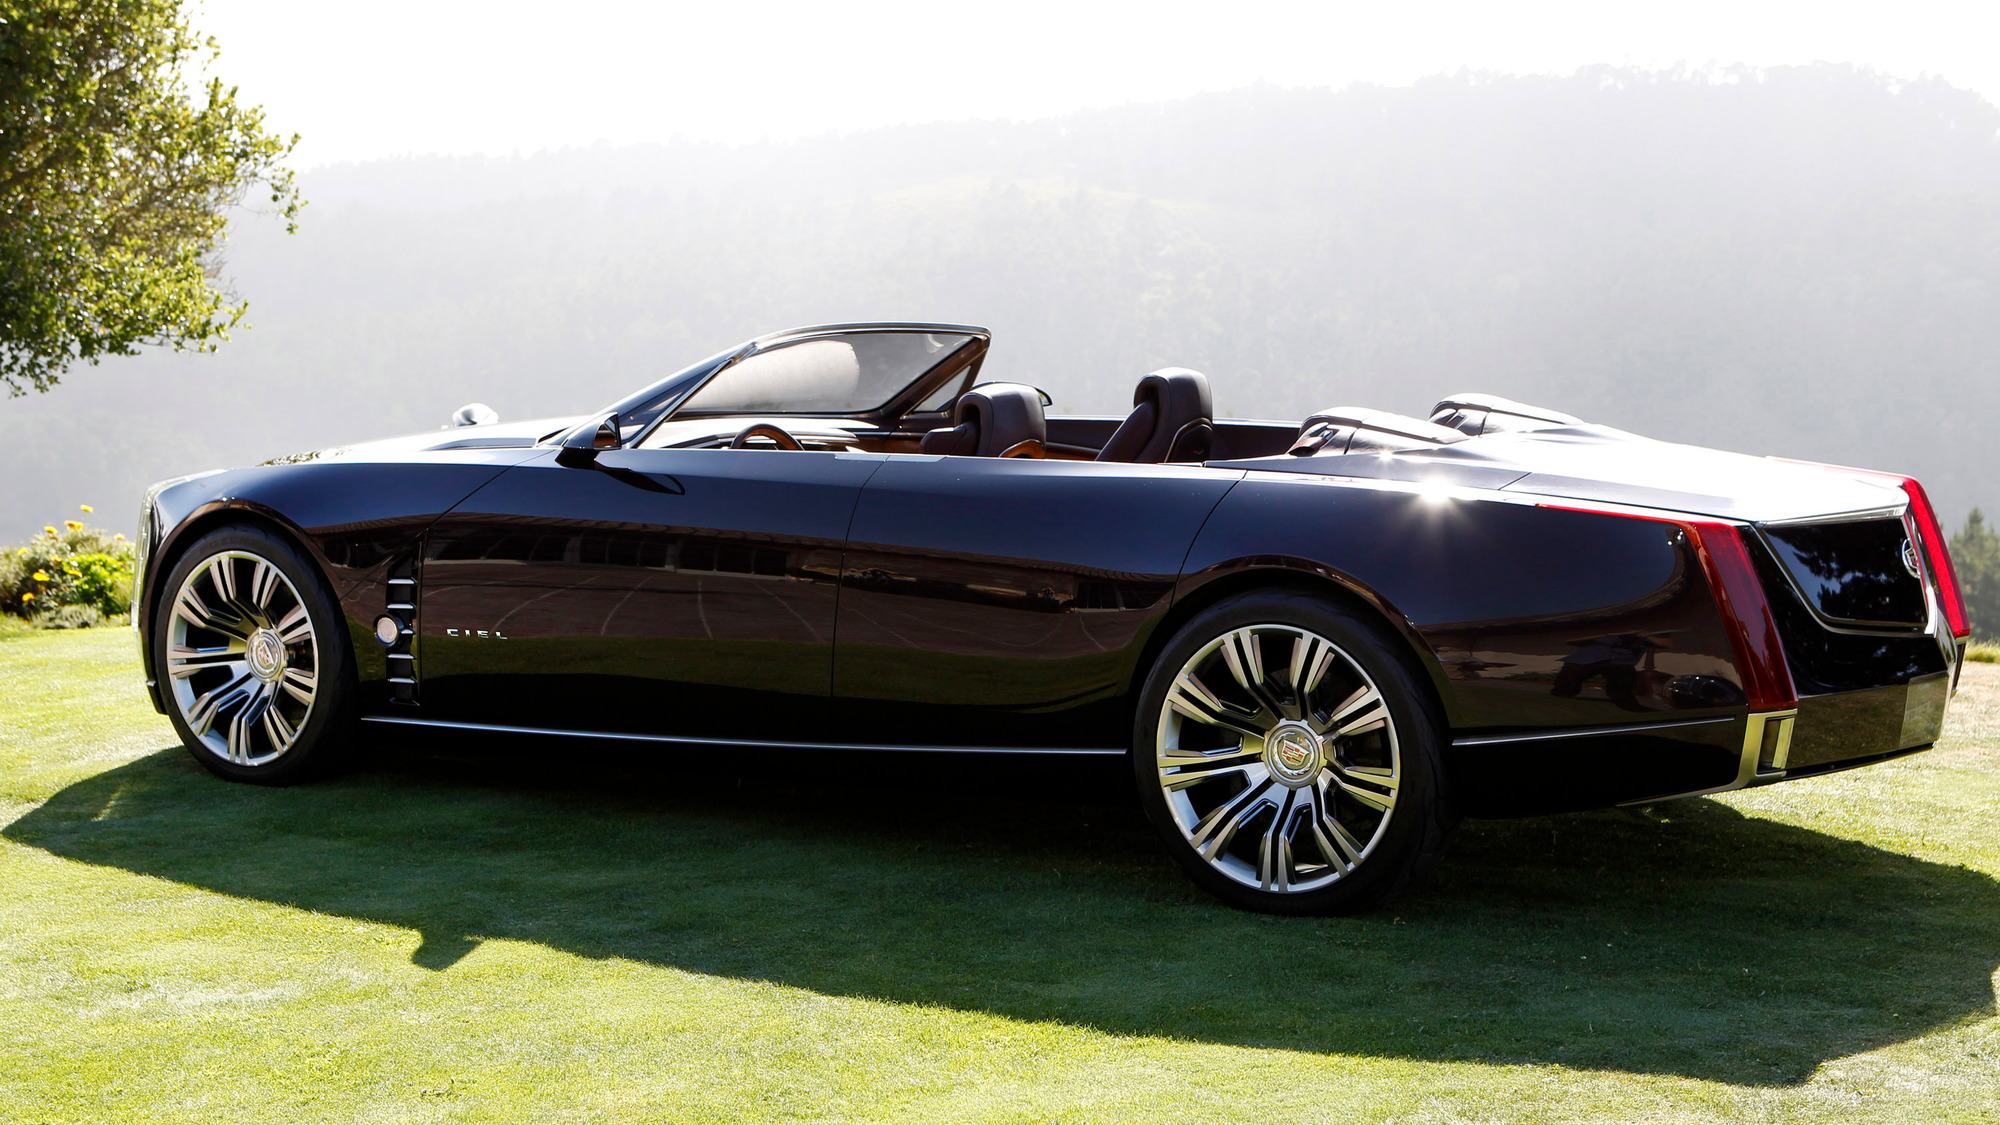 Drama Drives A Cadillac Ciel Four Door Convertible In Entourage